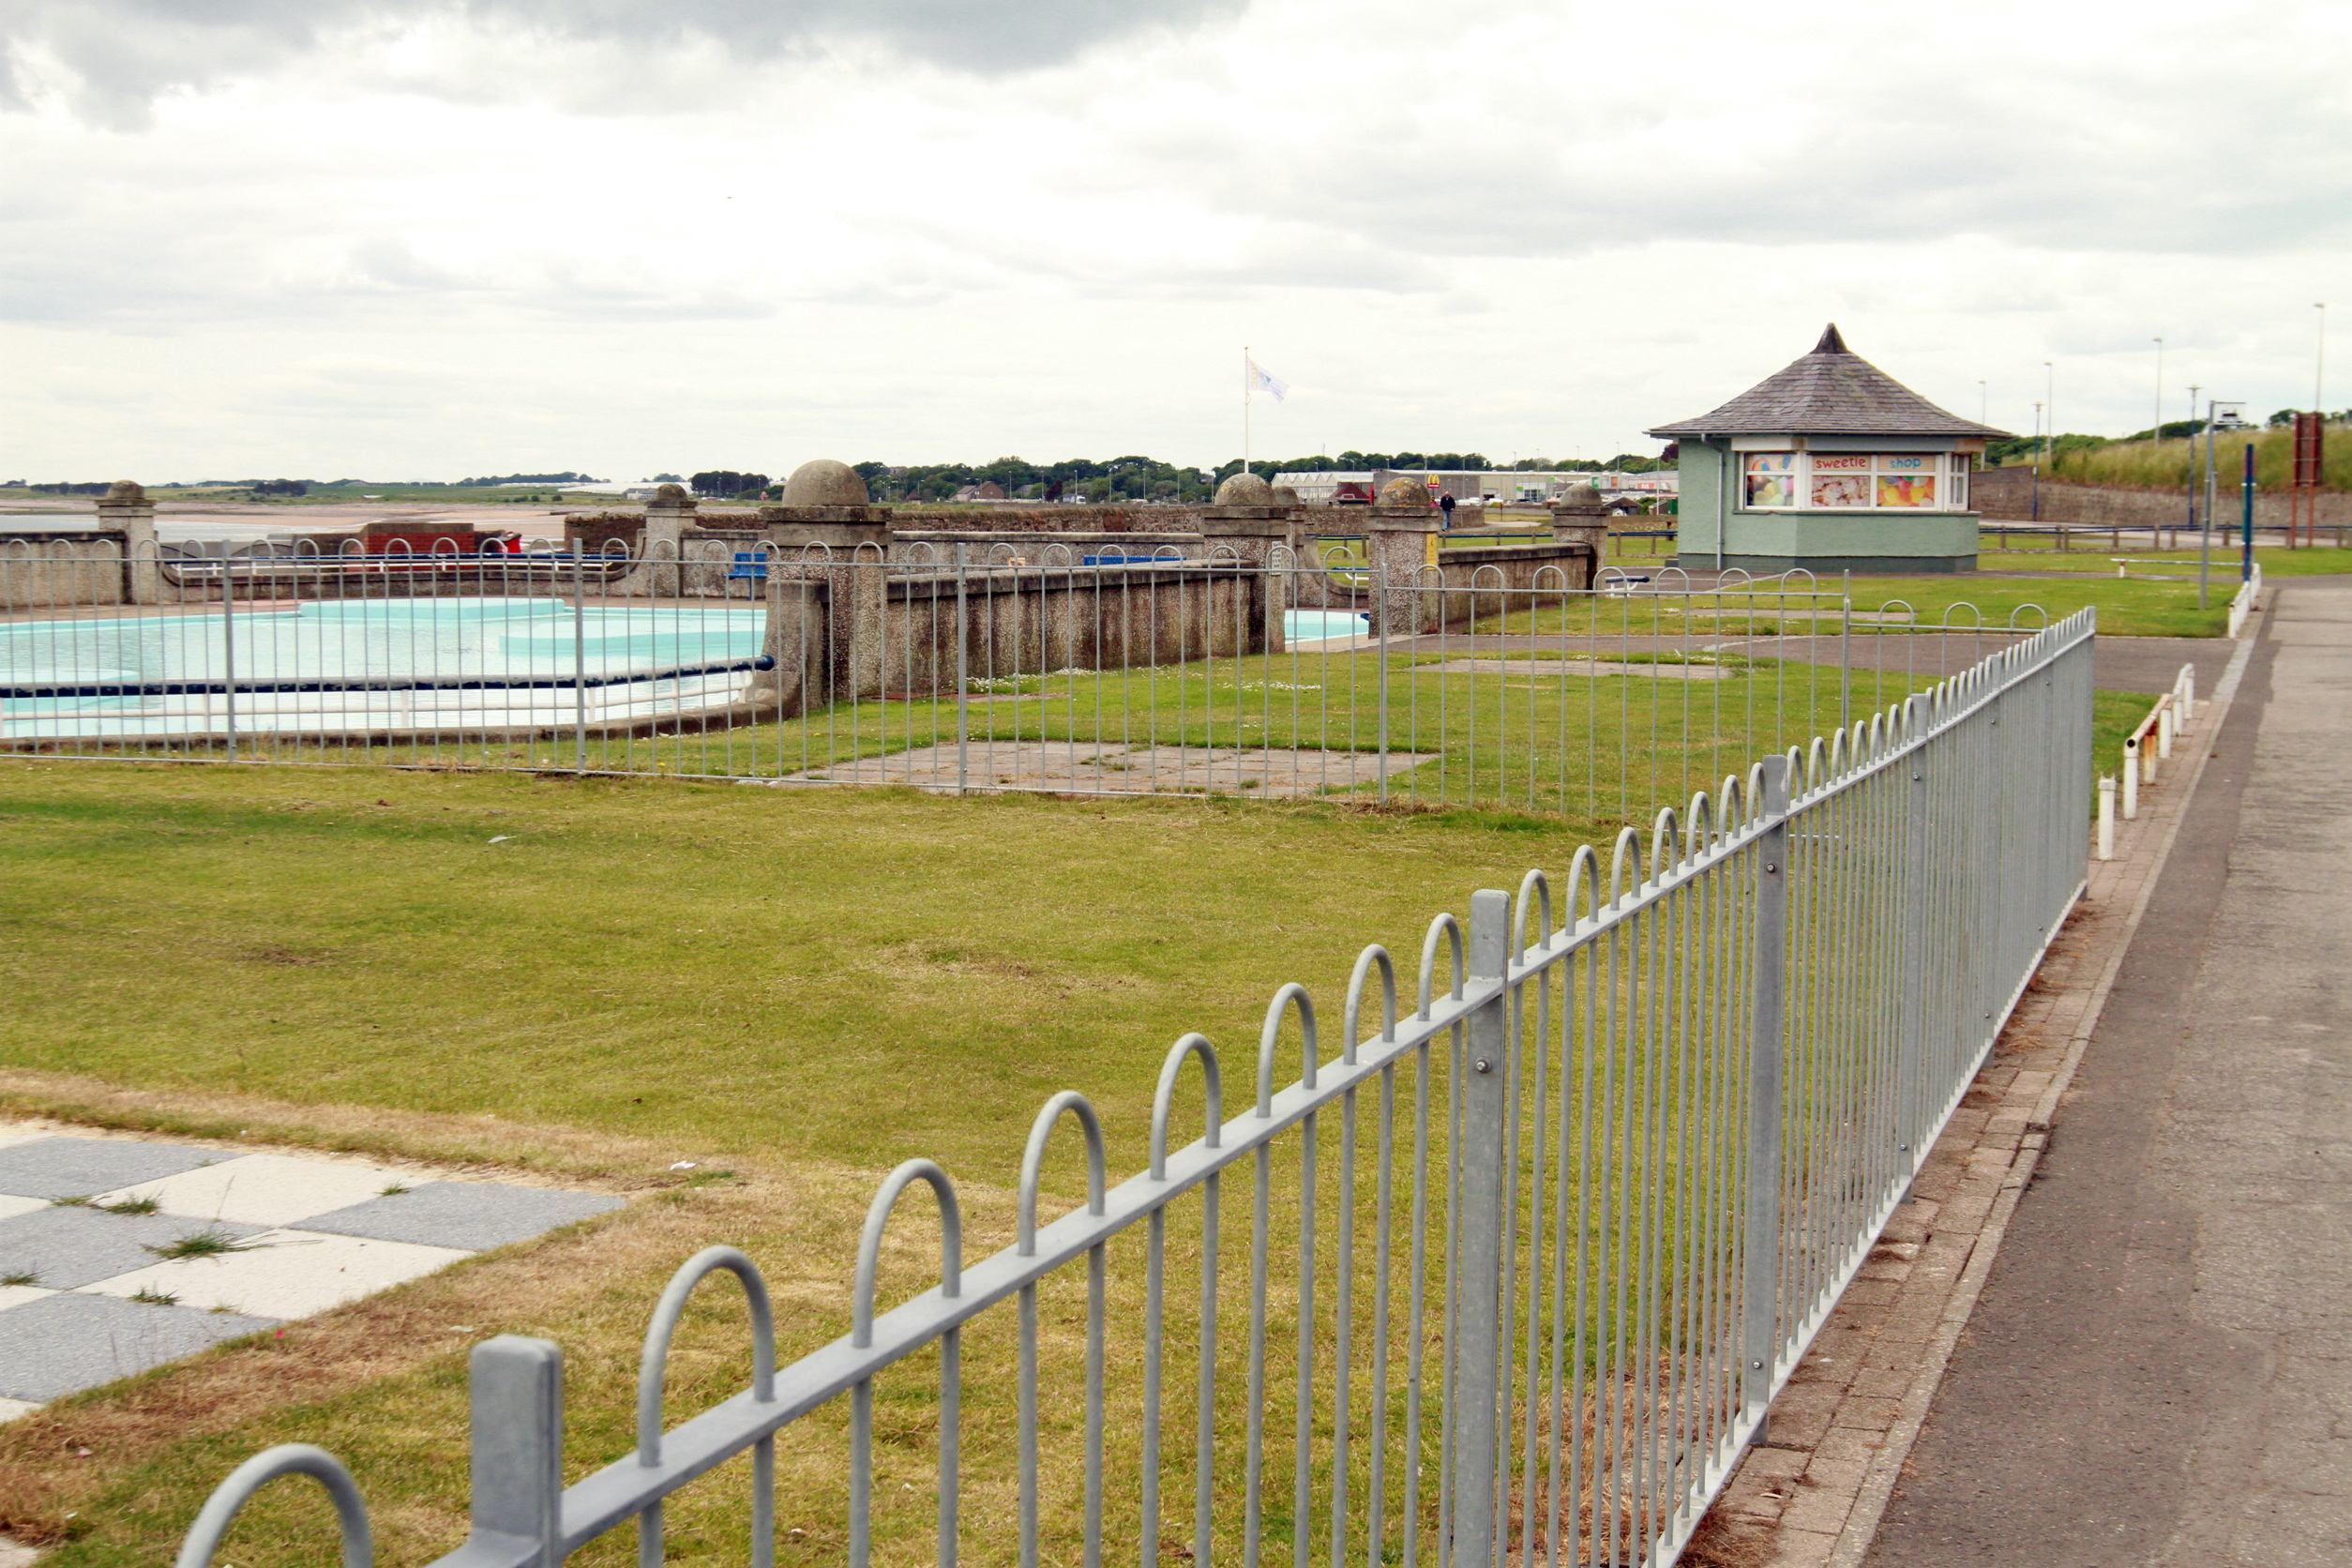 A 60-year-old man has been charged after an incident near Arbroath's West Links playpark.